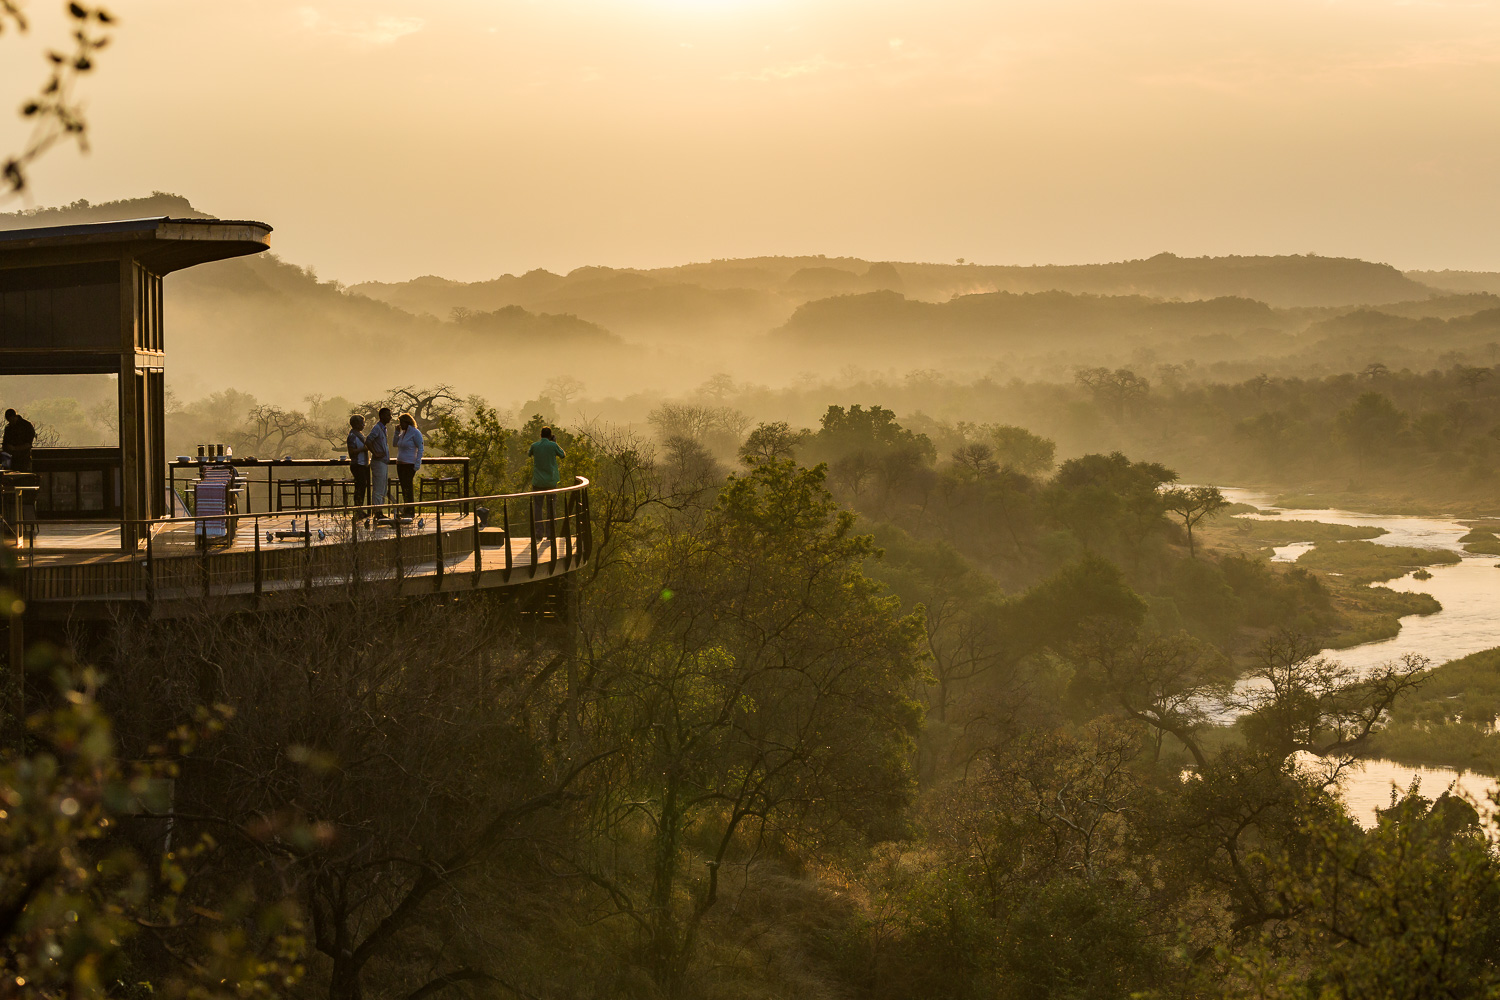 STAYING AT PEL'S POST, KRUGER NATIONAL PARK